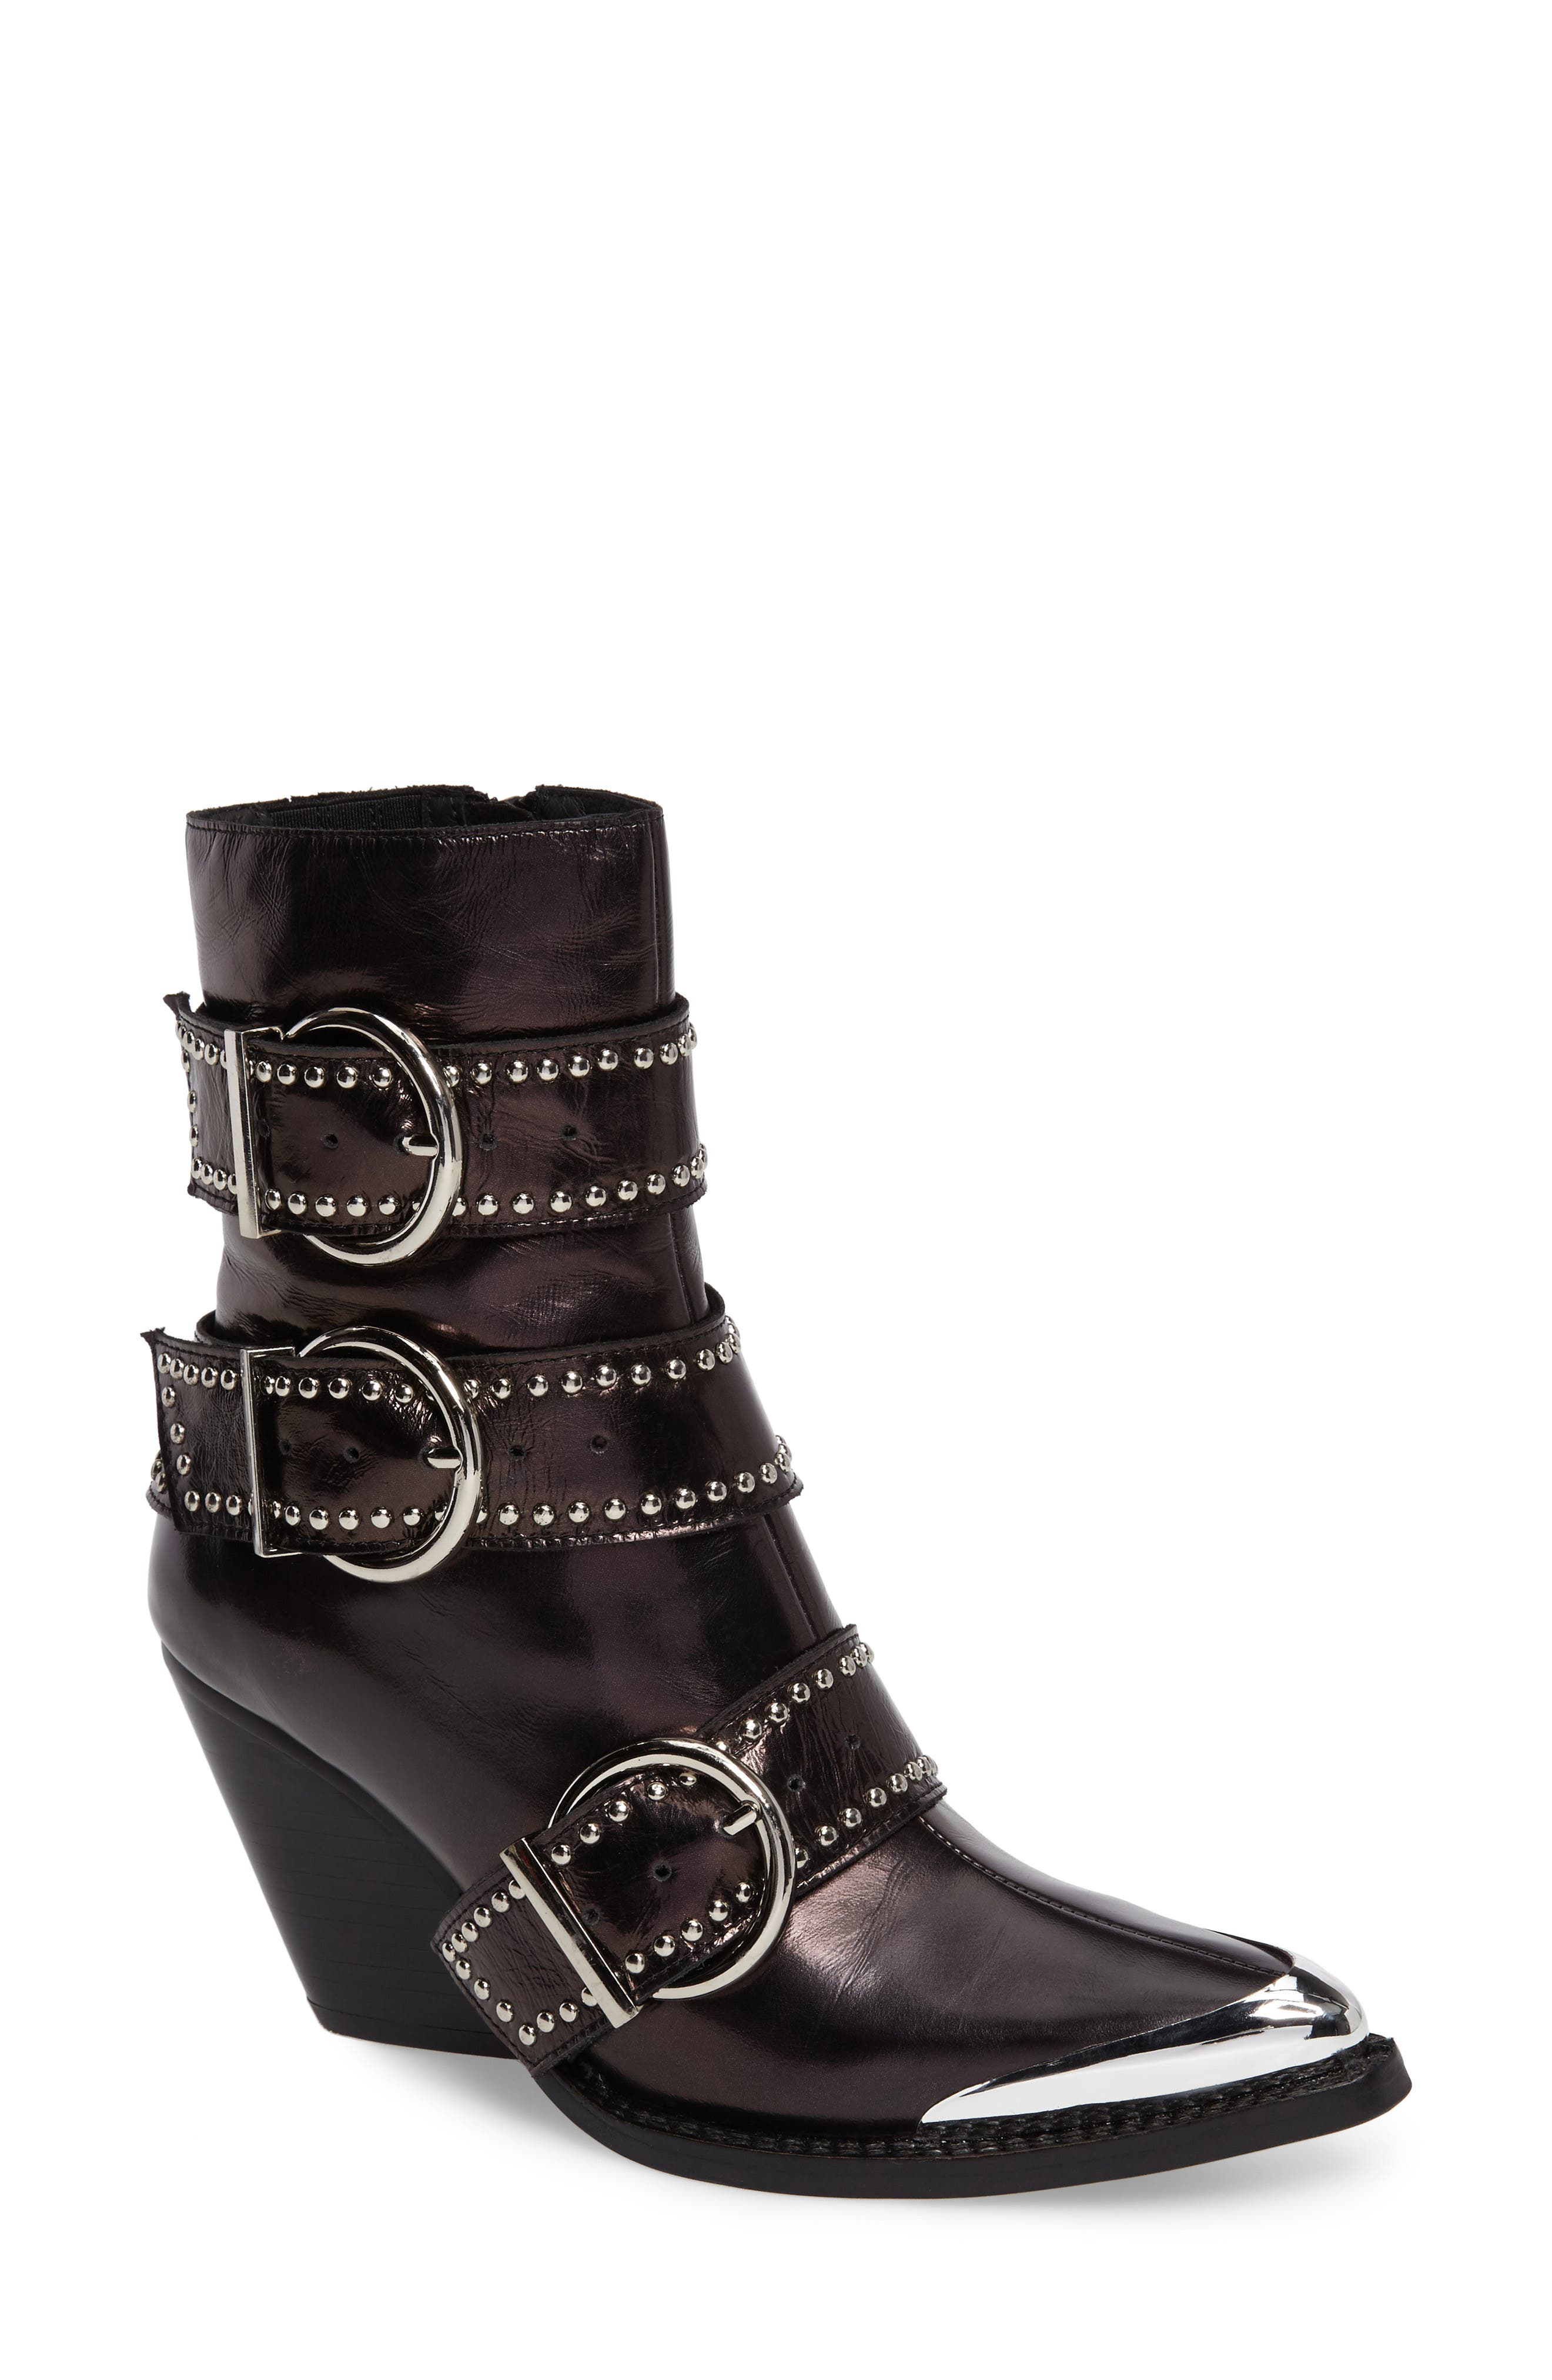 Main Image - Jeffrrey Campbell Marvolo Studded Bootie (Women)